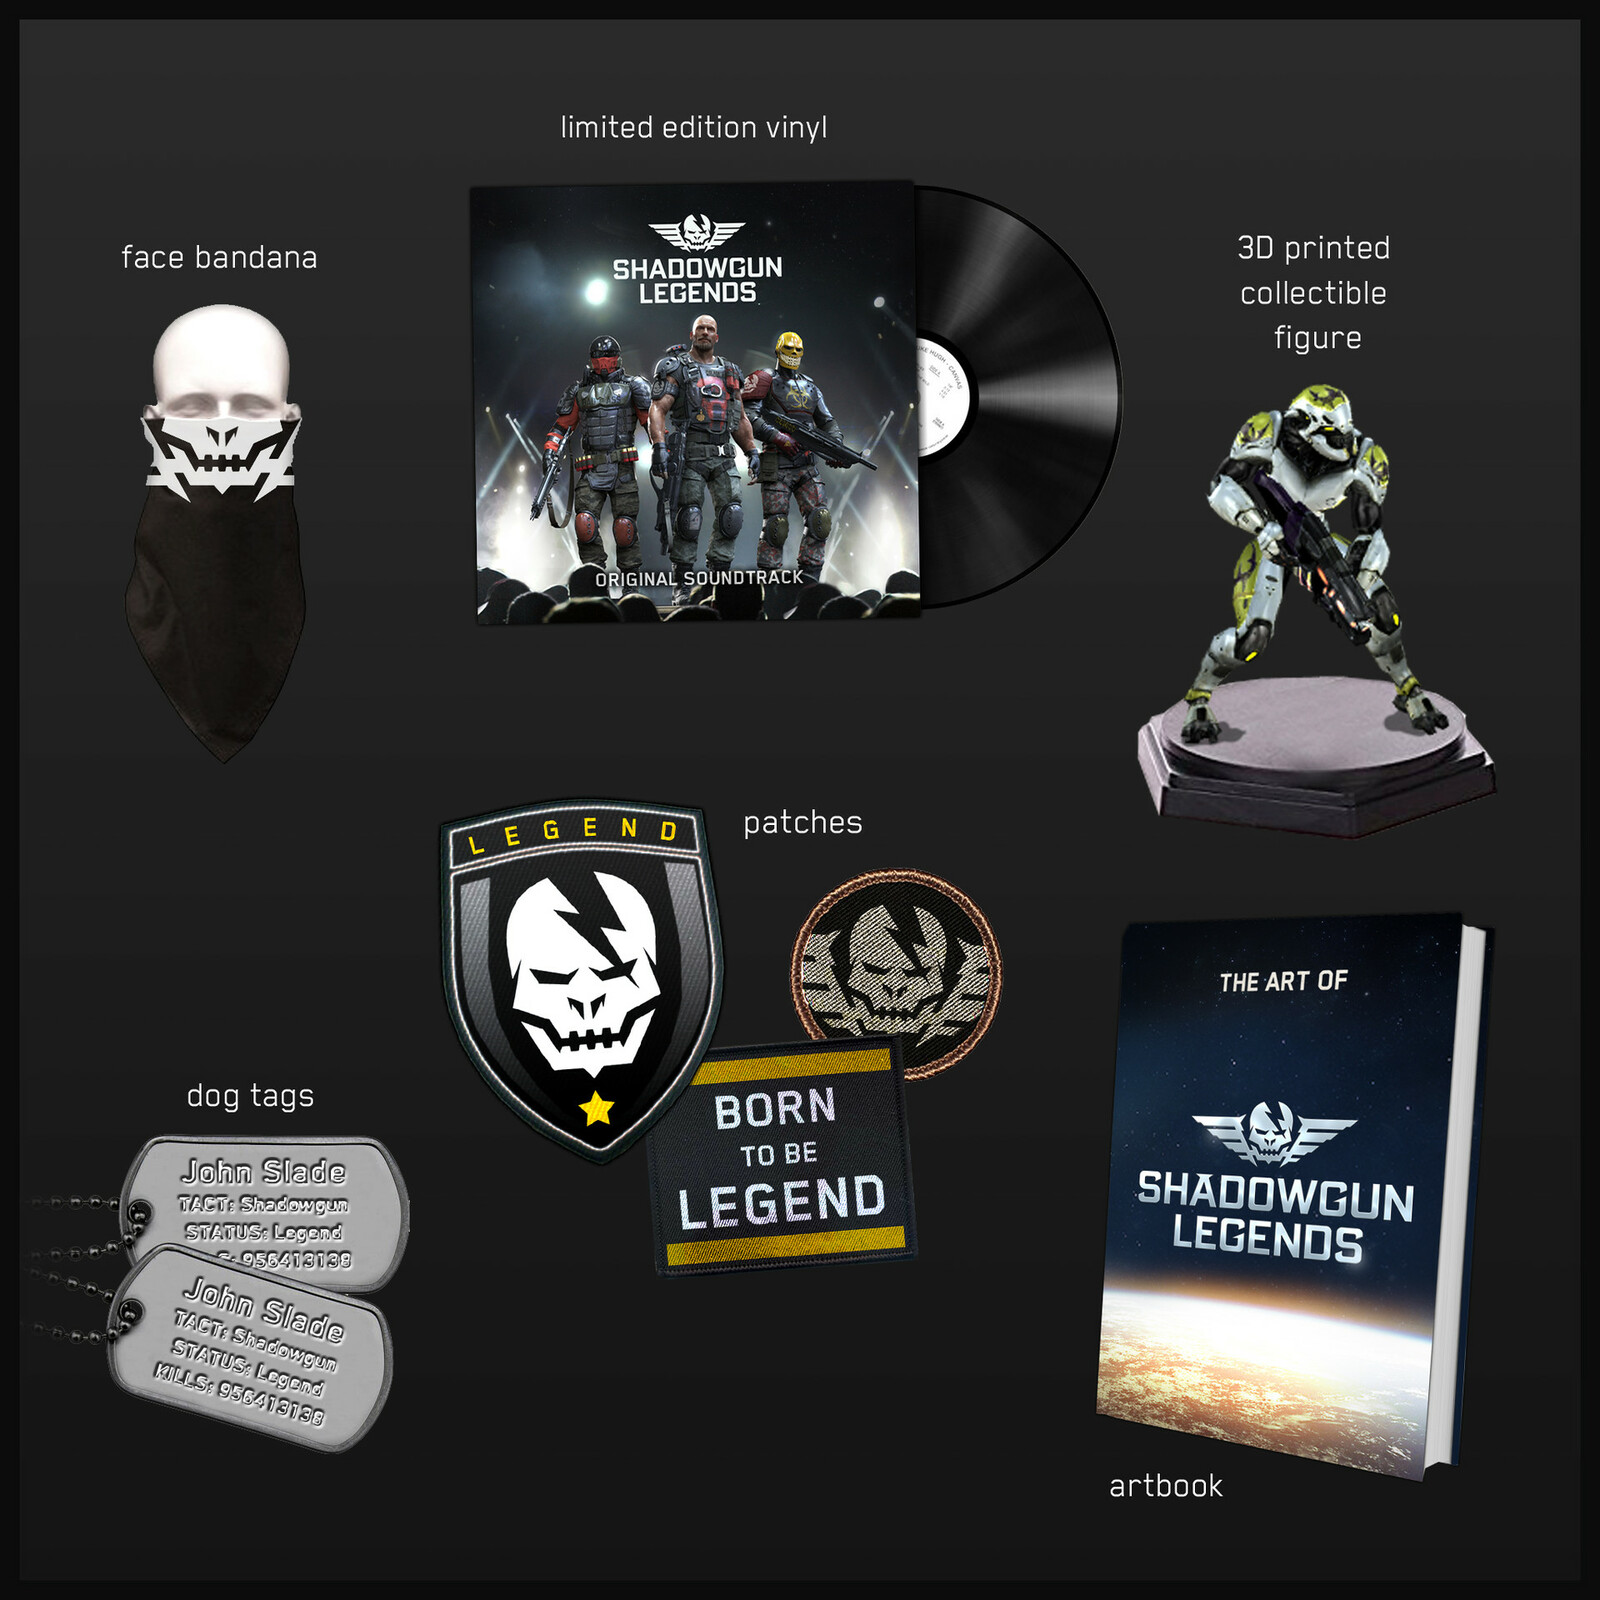 Various merchandise ideas.